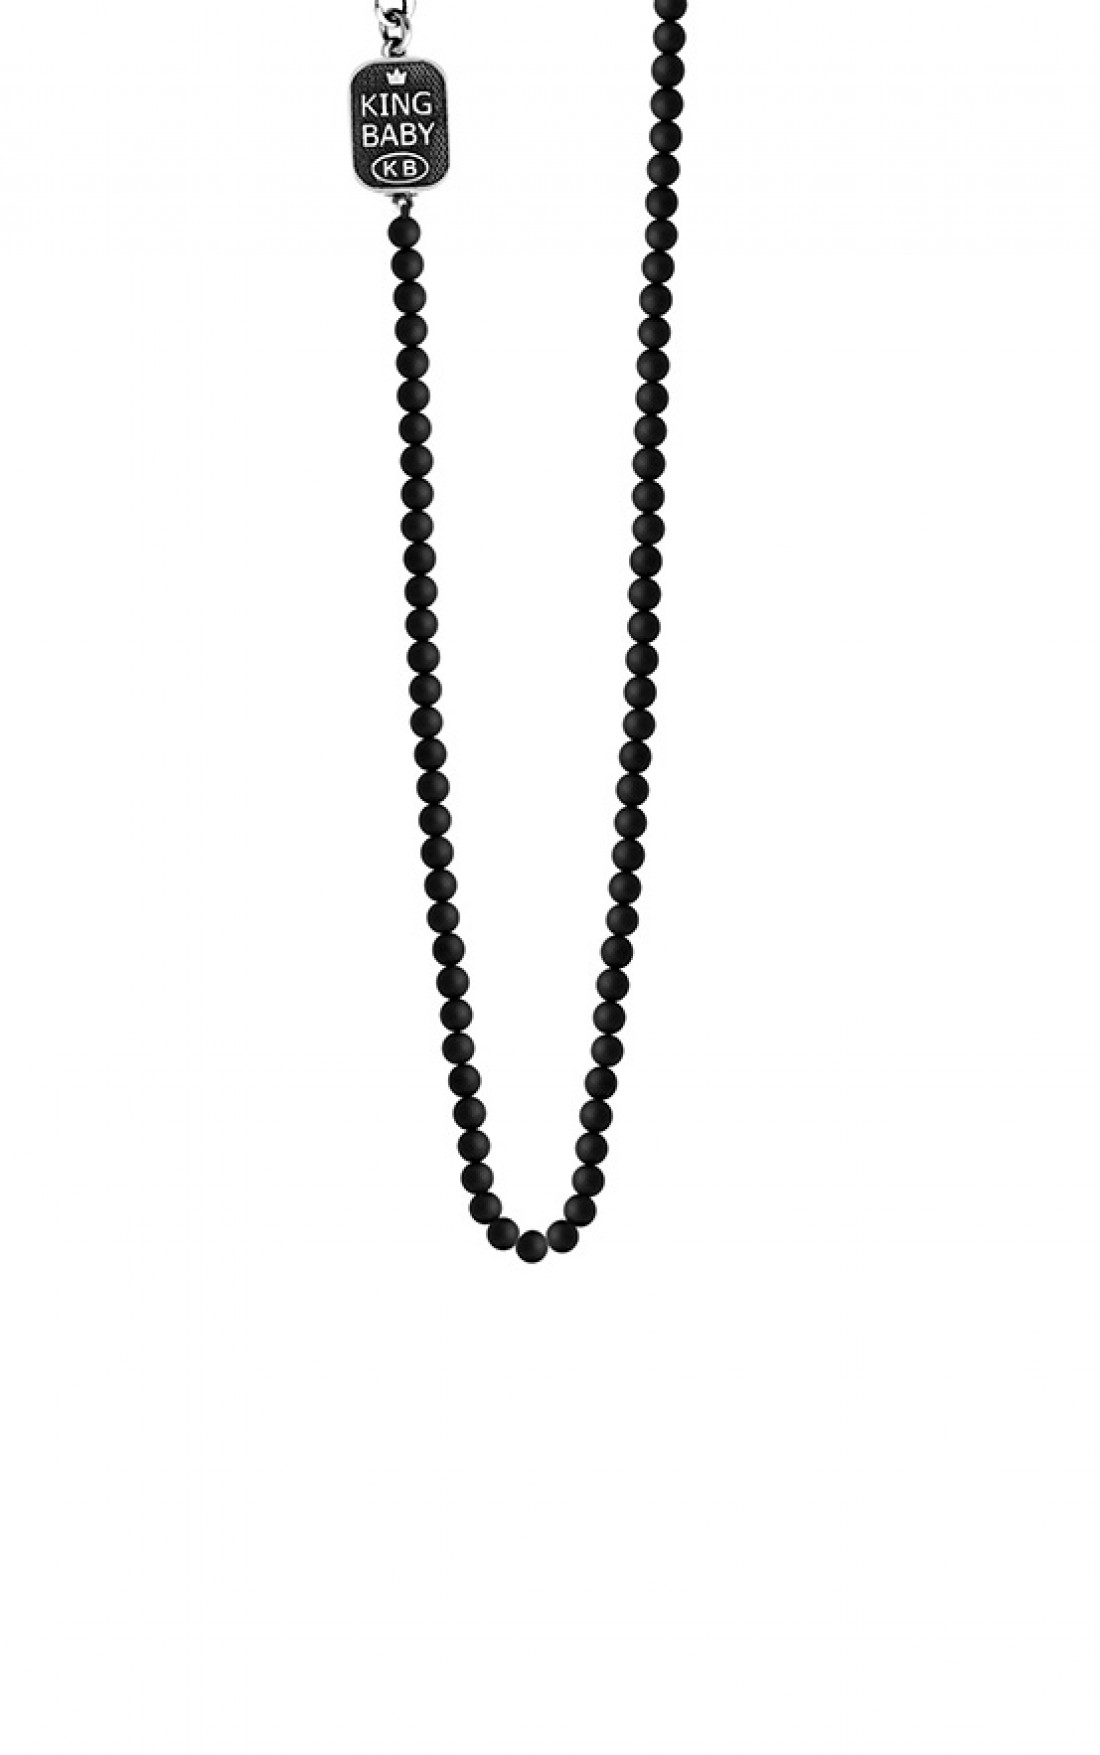 King Baby - Onyx Bead Necklace (K51-5300)